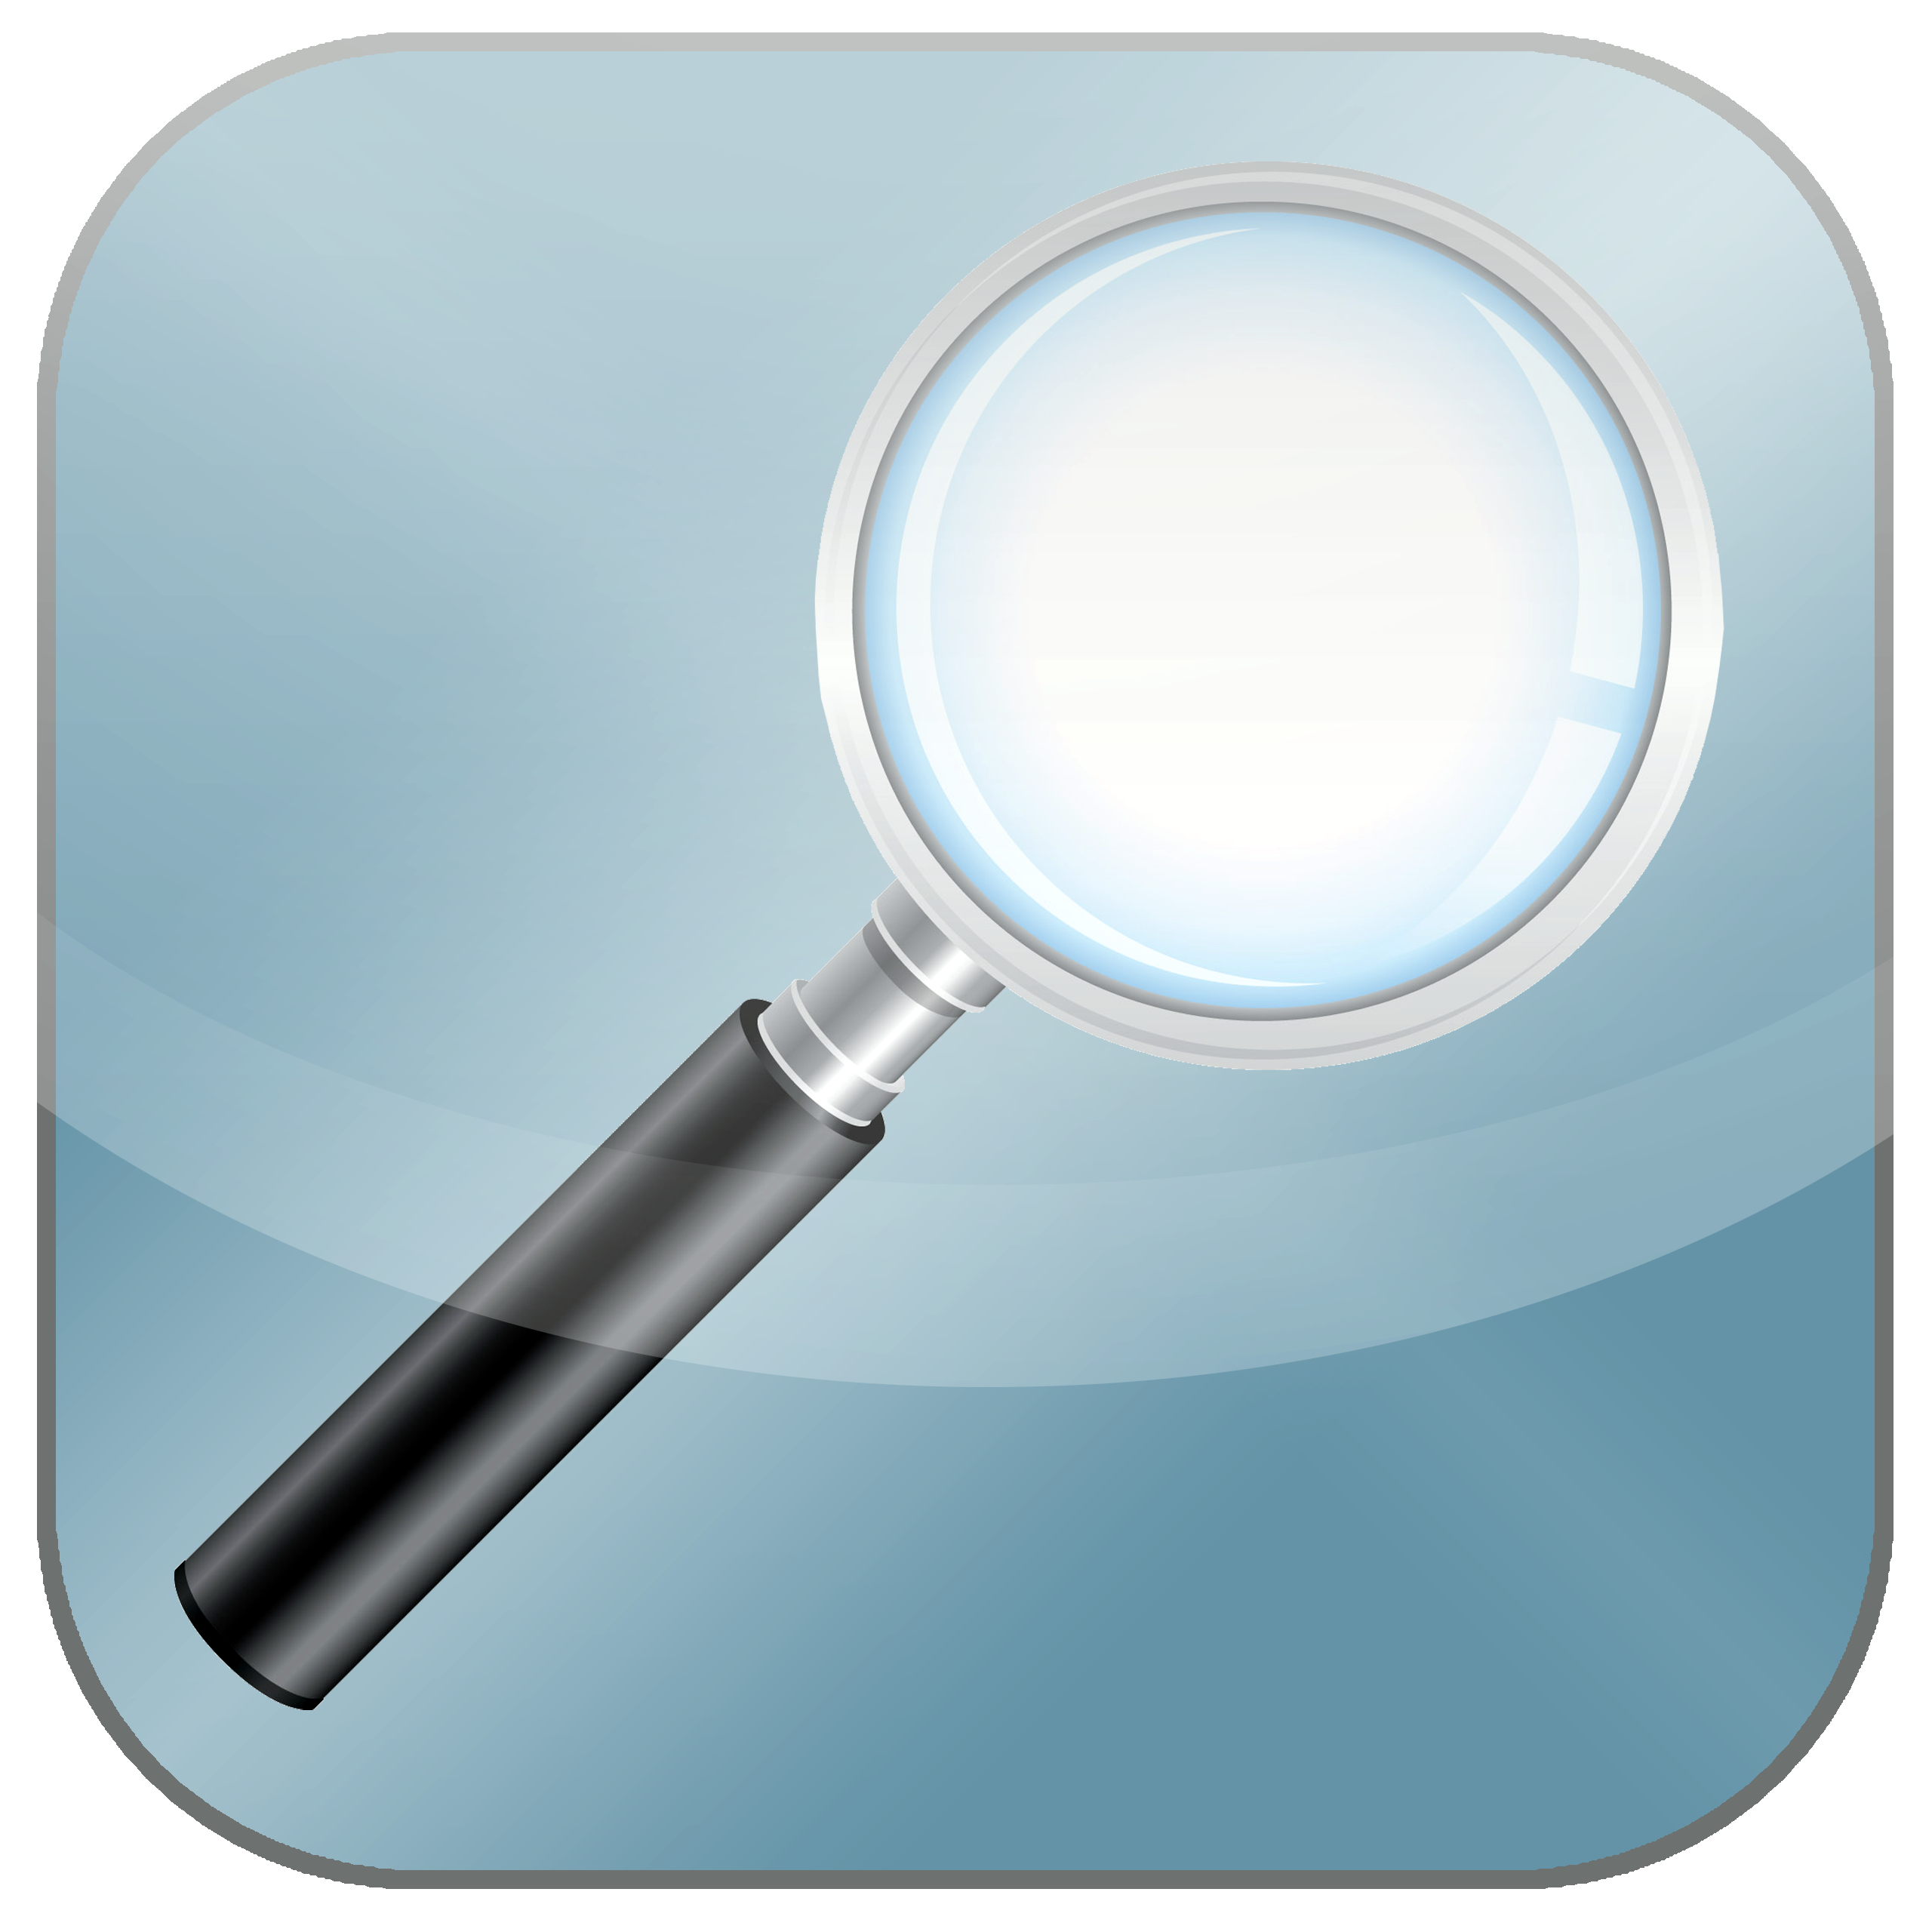 Basic search icon - magnifying glass